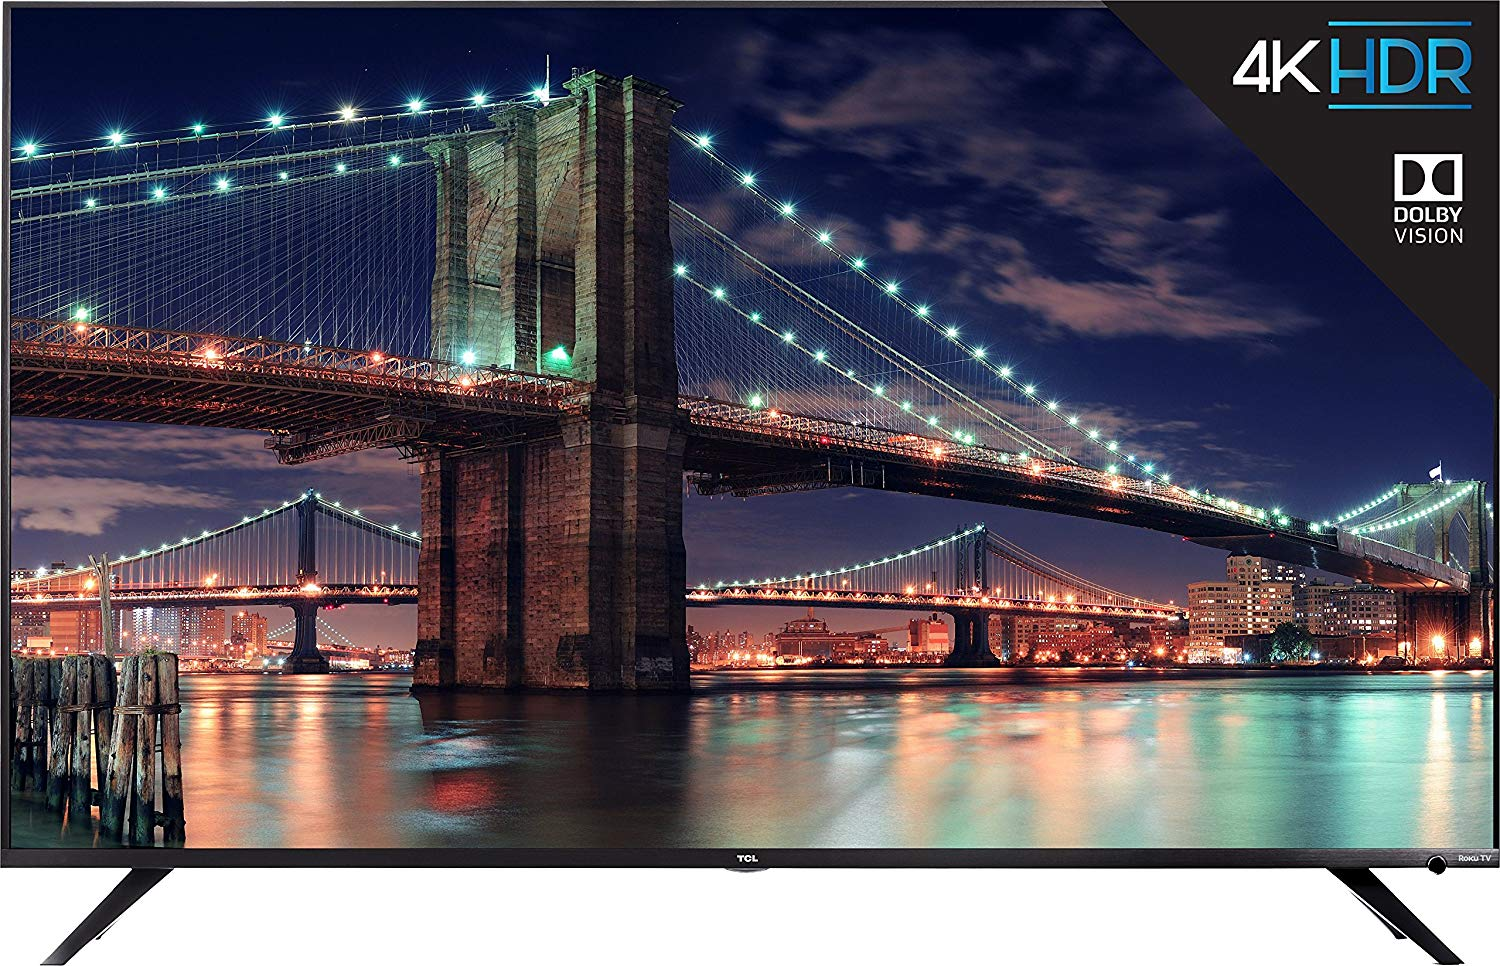 """65"""" TCL 65R617 4K UHD HDR Roku Smart LED TV (2018 Model) for $699.99 at Amazon"""